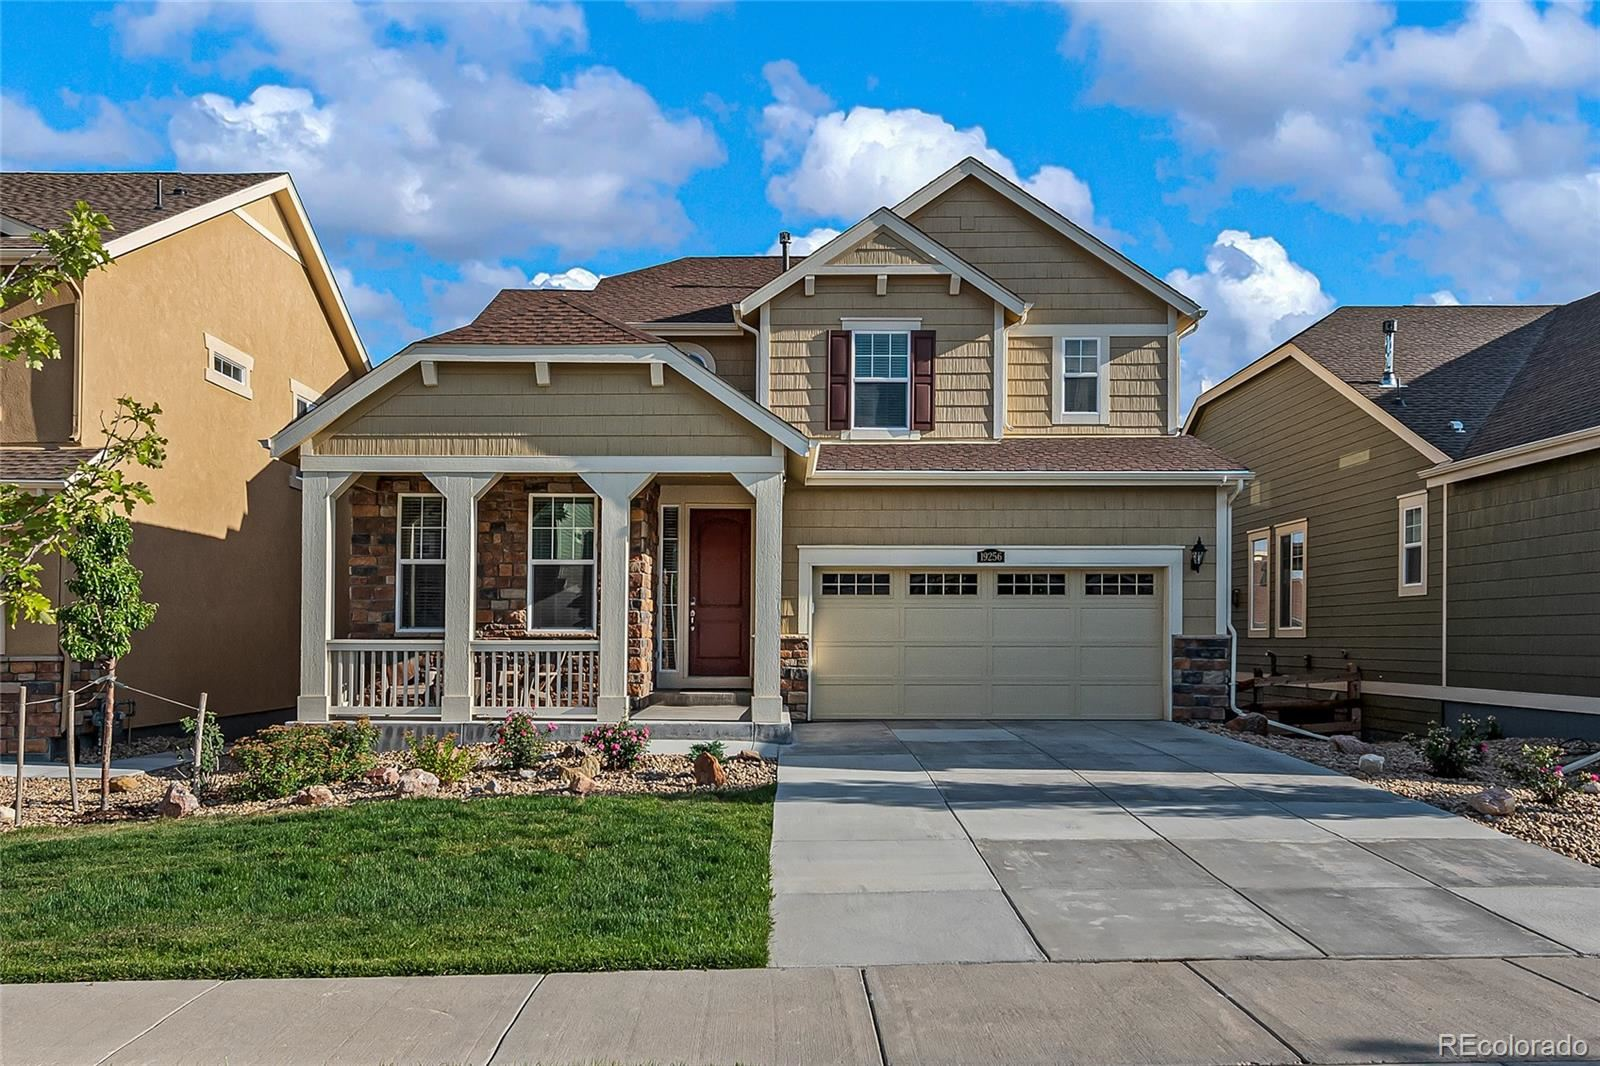 19256 W 84th Place, Arvada, CO 80007 - #: 4389200